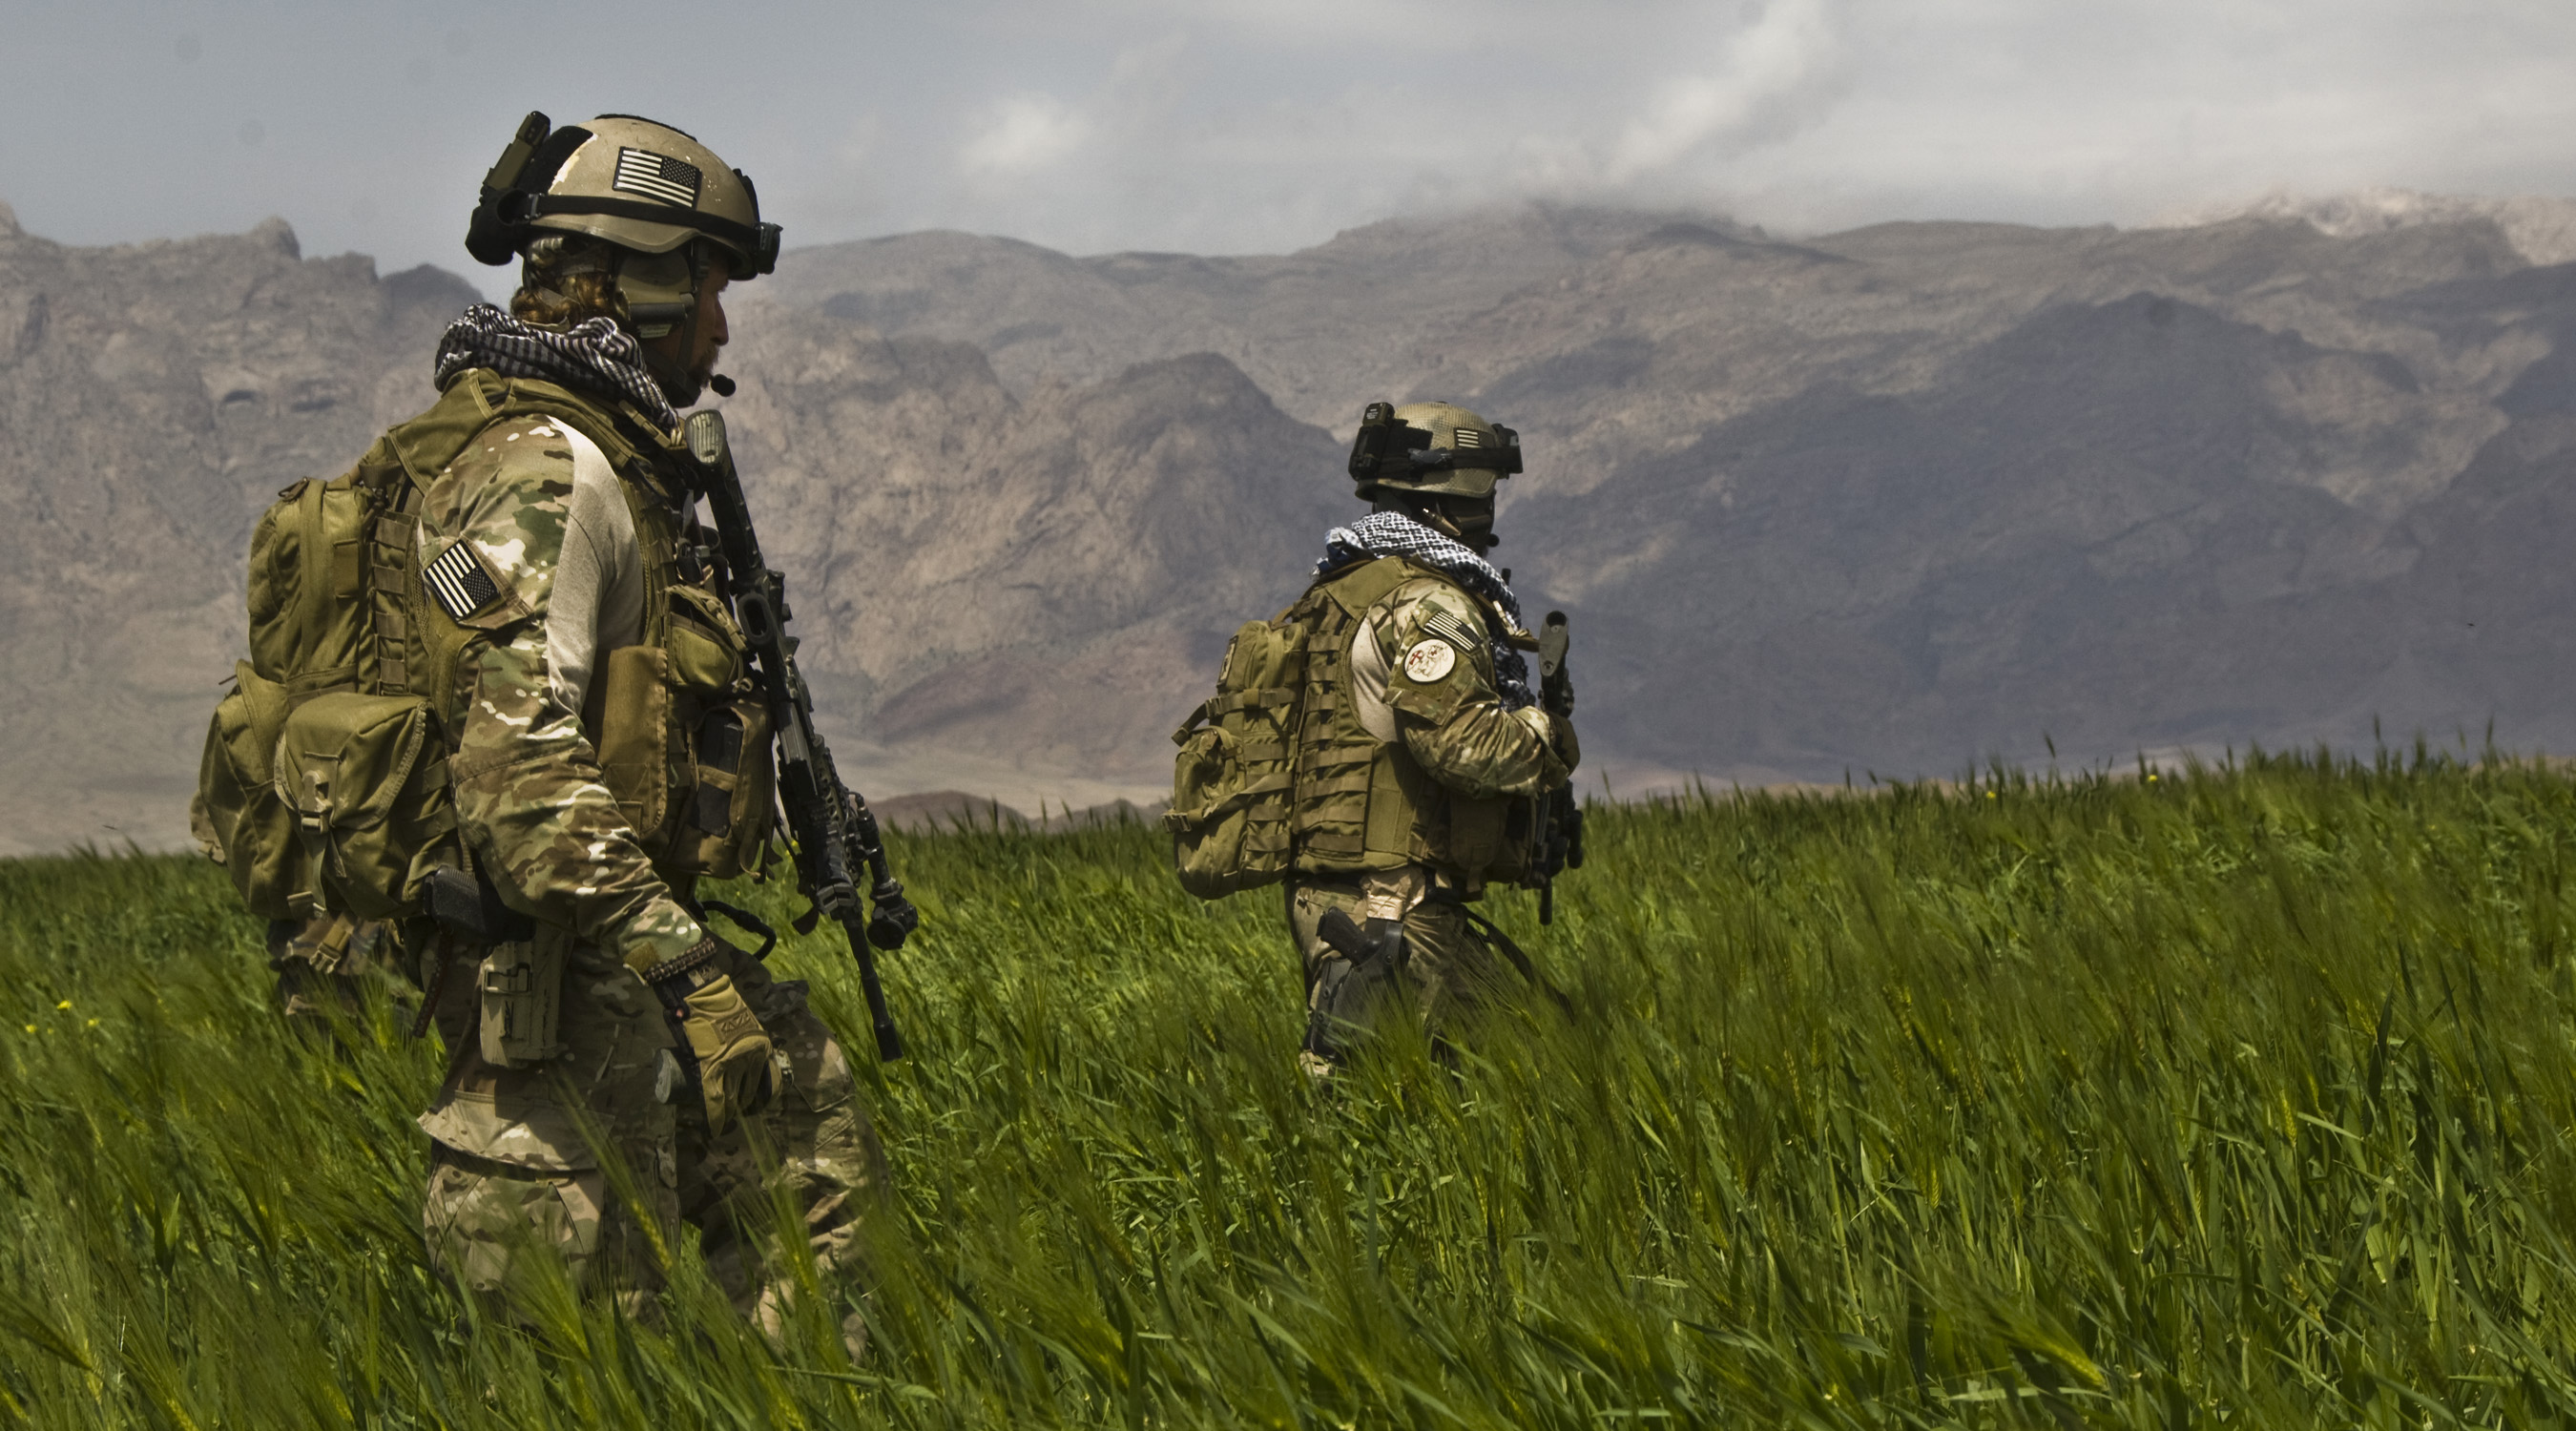 Afghan National Army (ANA) Commandos with the 207th Kandak conduct a patrol on April 12, 2009, in Gulistan district Farah province. On Monday, President Donald Trump unveiled his new strategy for the 16-year-old war there. (Spc. Joseph A. Wilson/Department of Defense)